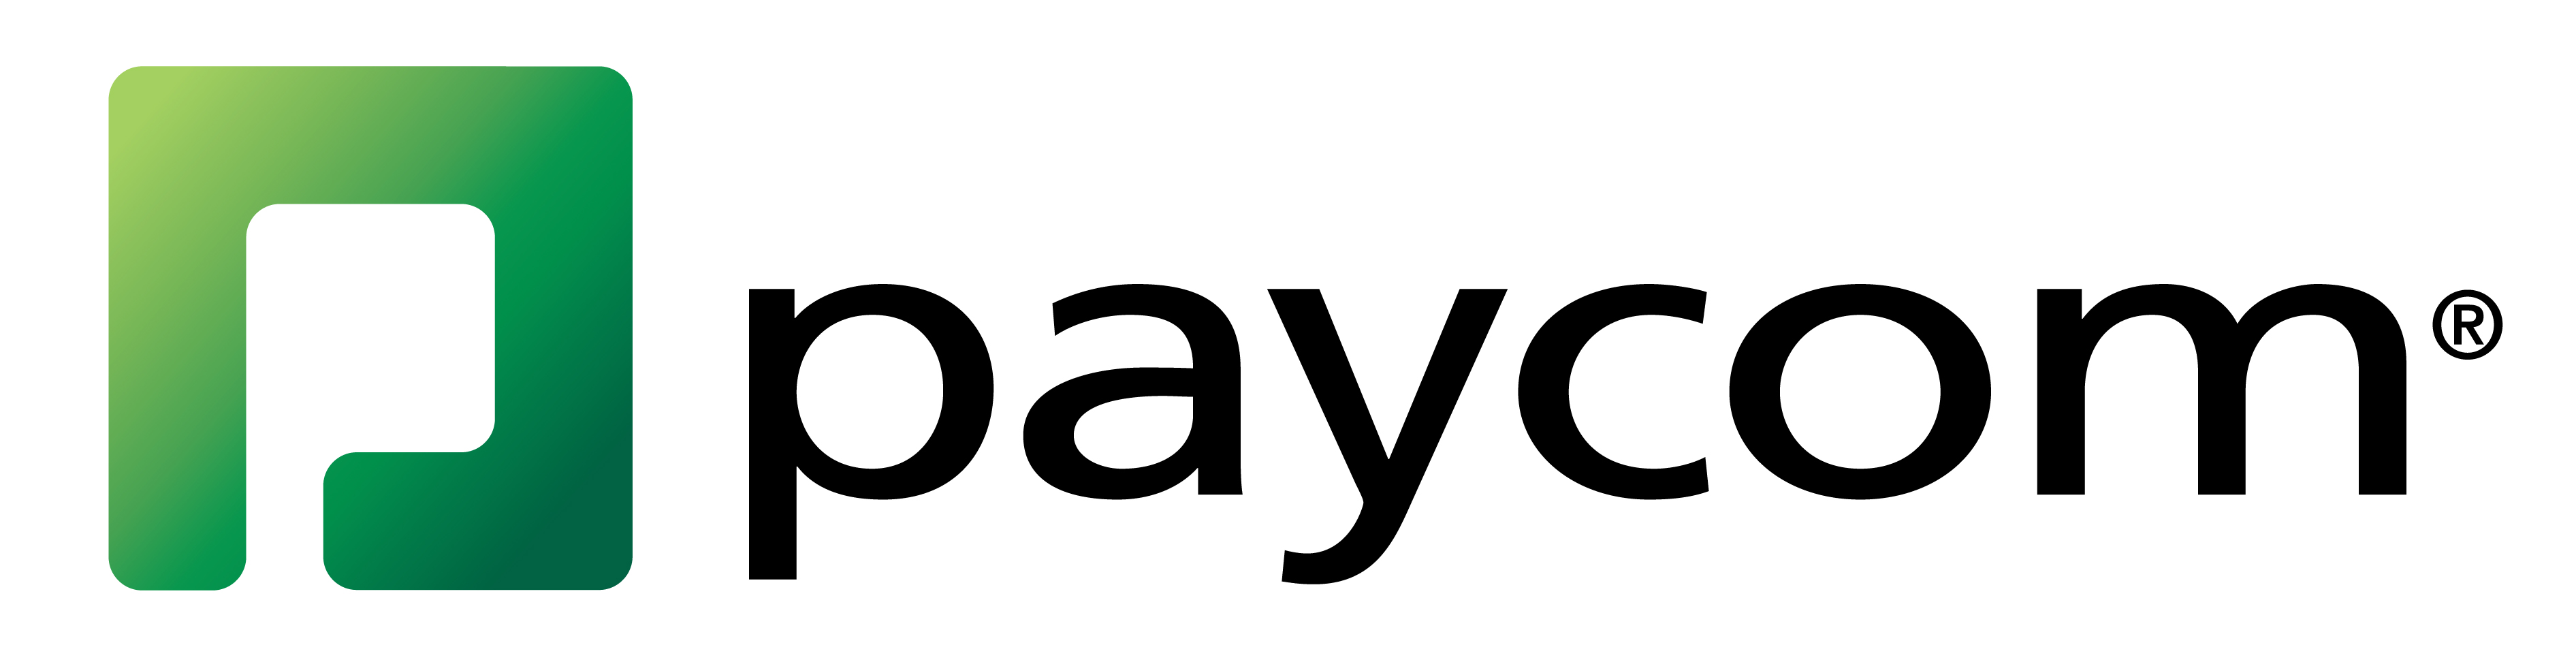 Paycom  Interns Logo